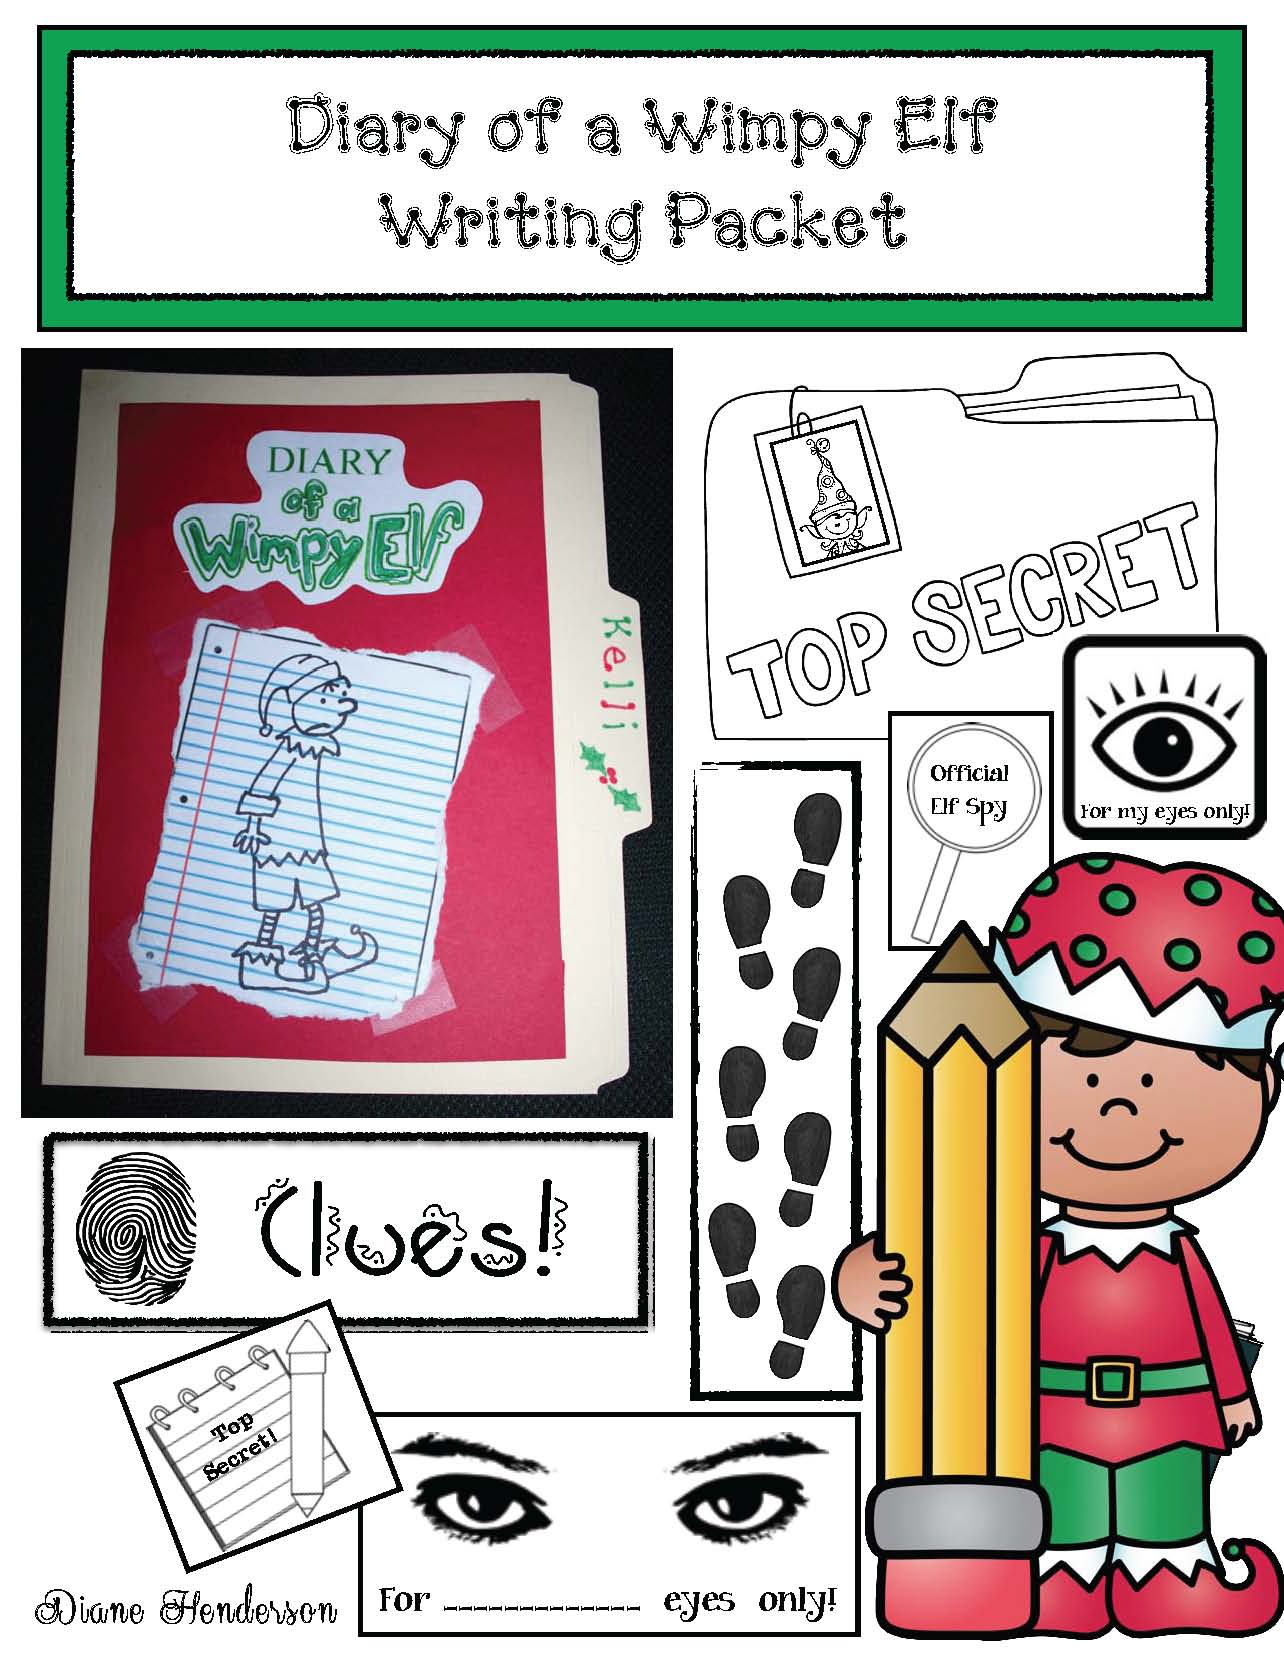 spin a story wheels, creative writing activities, december writing prompts, elf on a shelf activities, directional writing, christmas centers